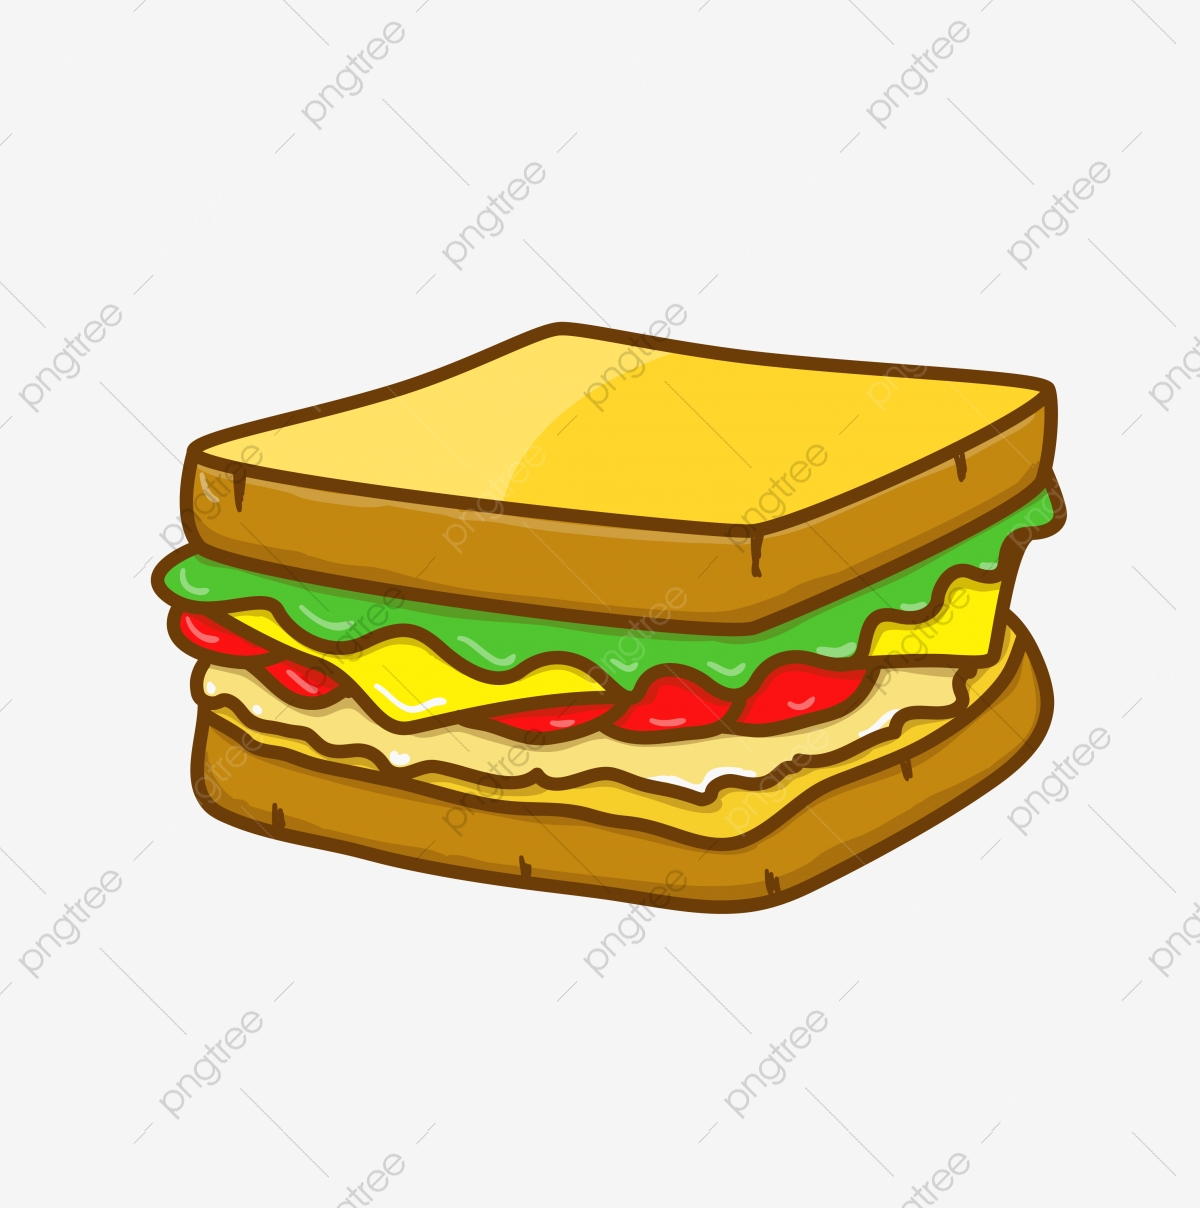 sandwich vector illustration in cartoon style sandwich food fresh png and vector with transparent background for free download https pngtree com freepng sandwich vector illustration in cartoon style 5318628 html